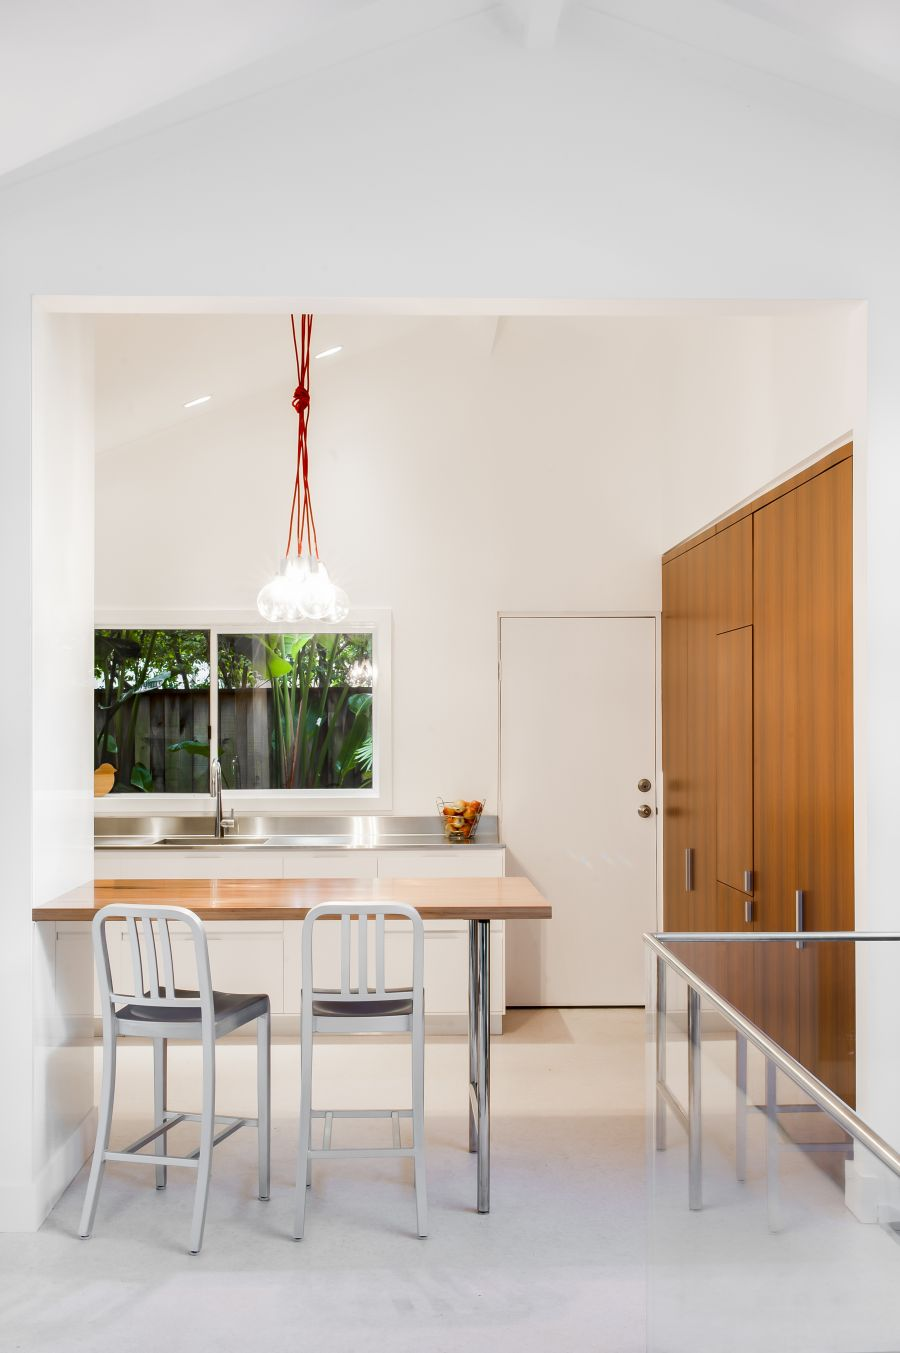 Amazing Clean Contemporary Design Incorporating Laundry Room, Kitchen and Small Office